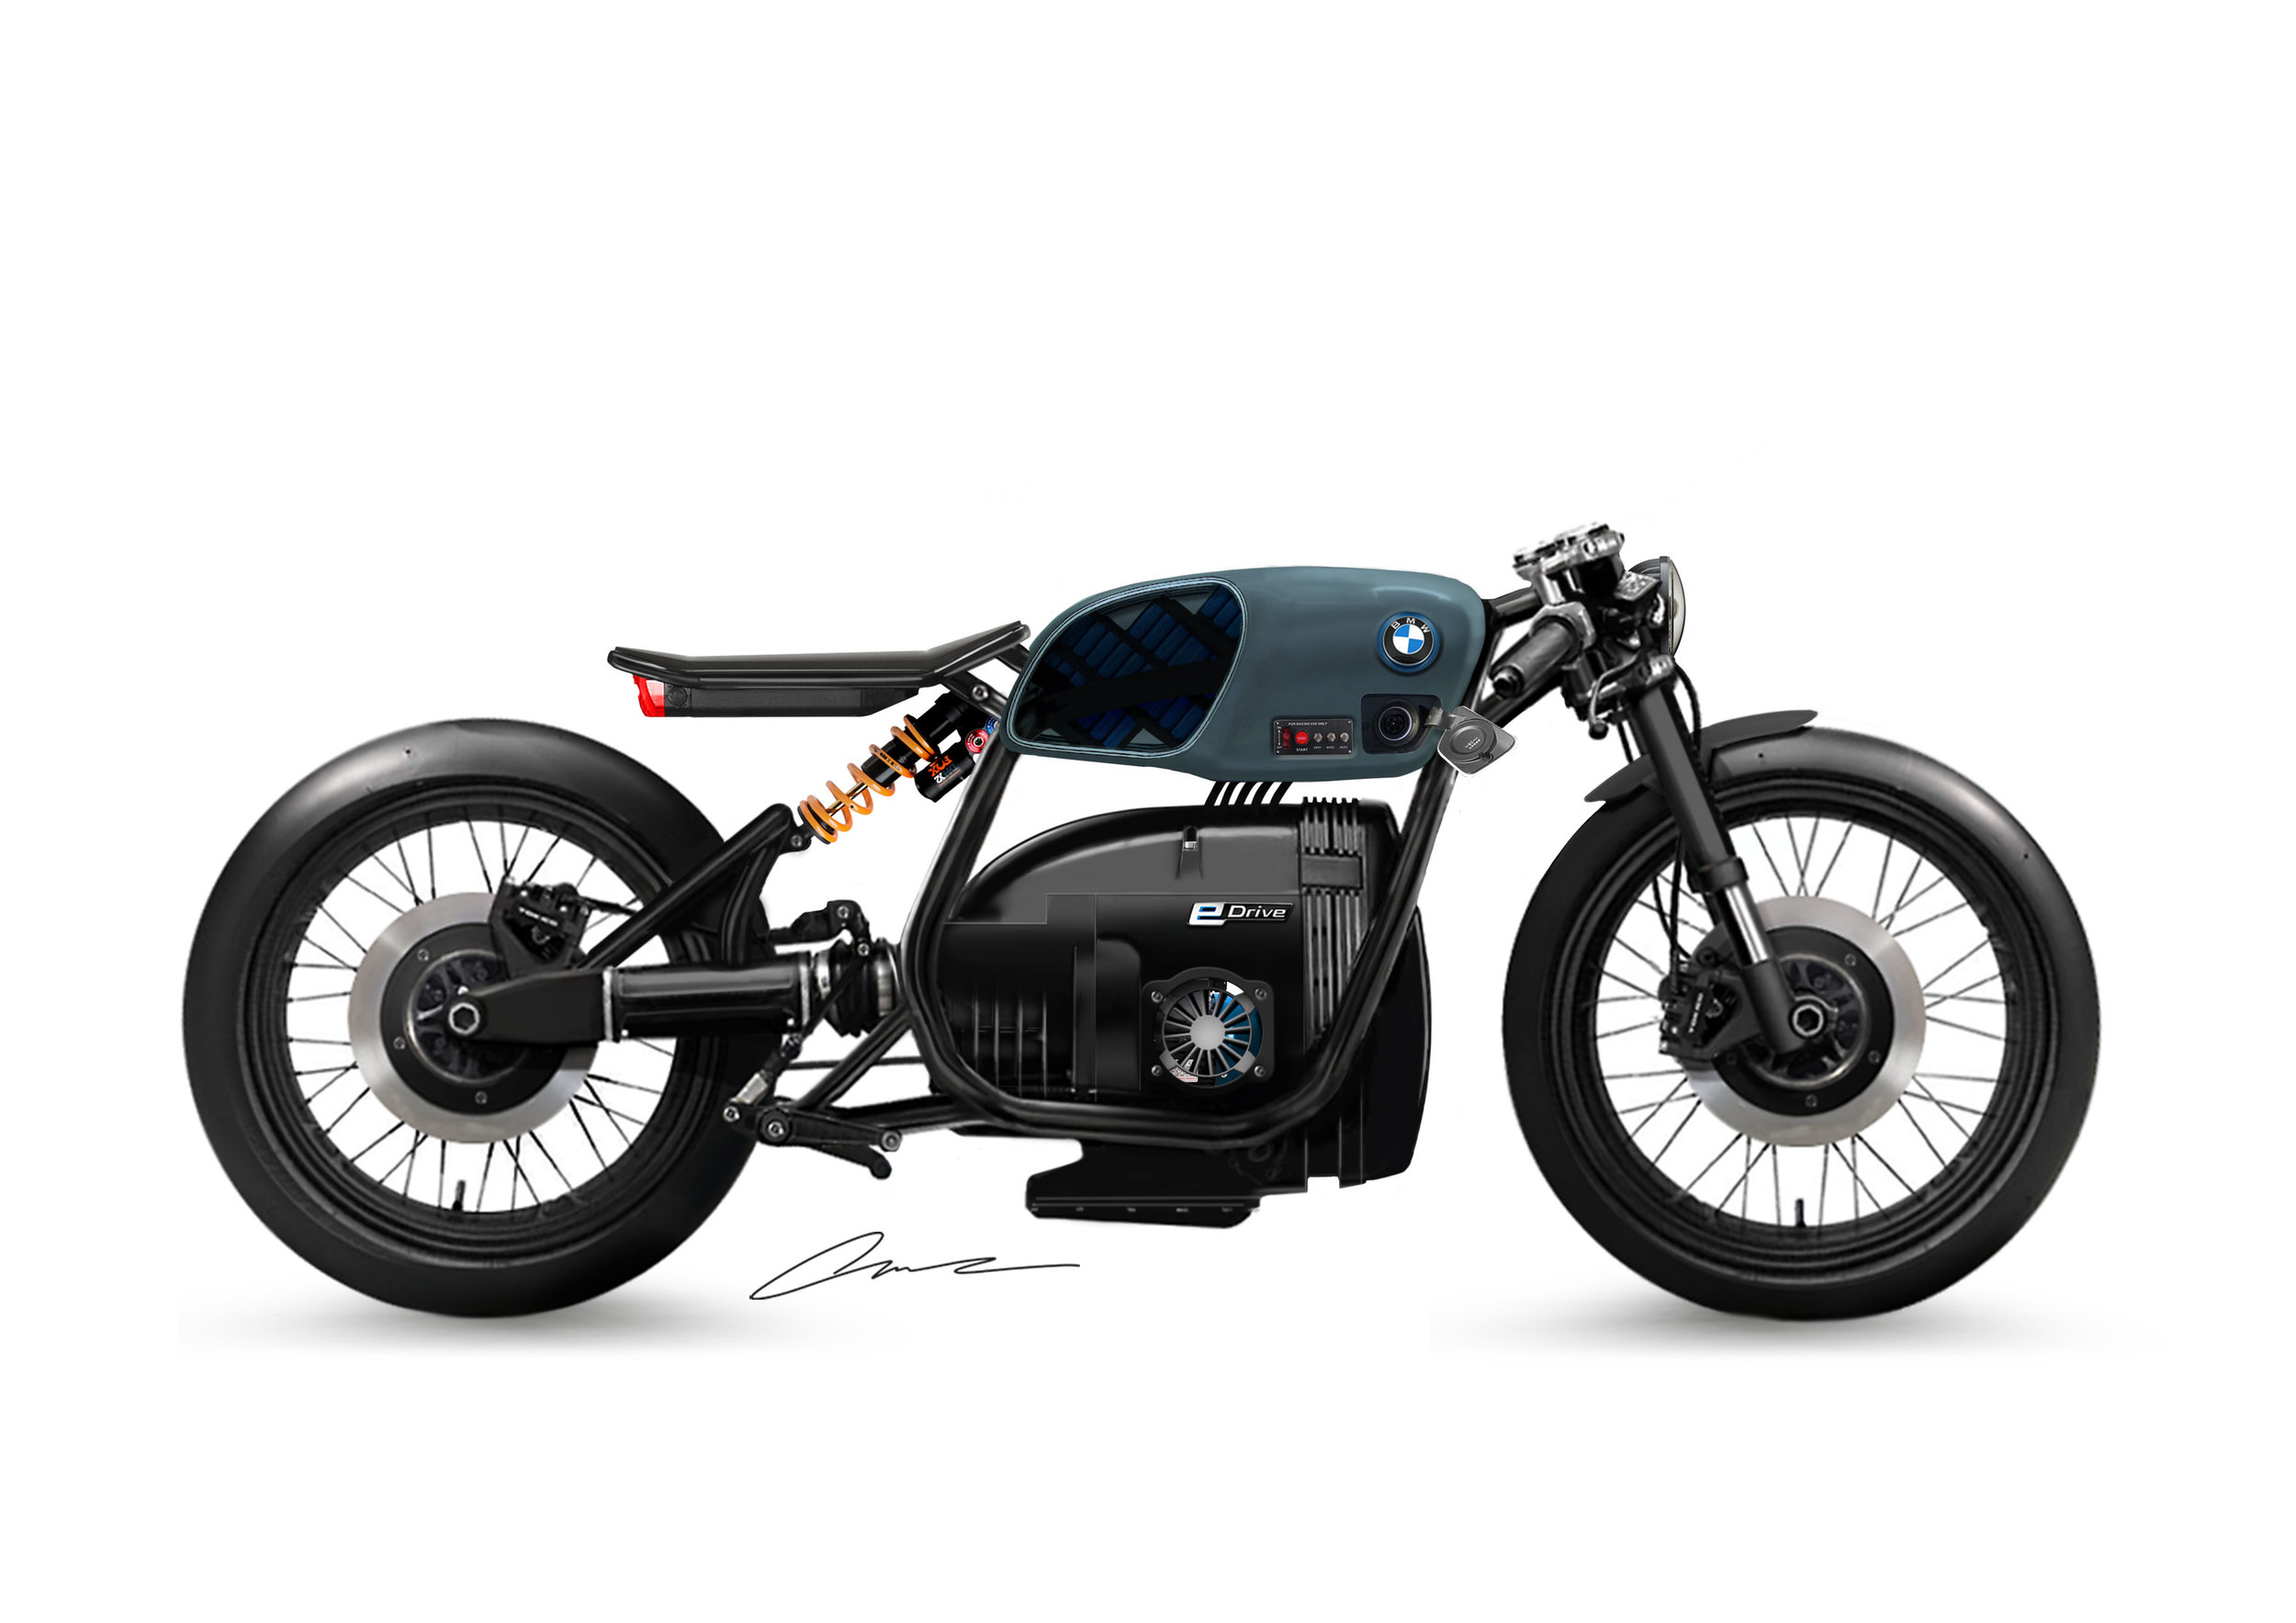 BMW ER80 electric motorcycle form study by Luuc Muis | EvNerds